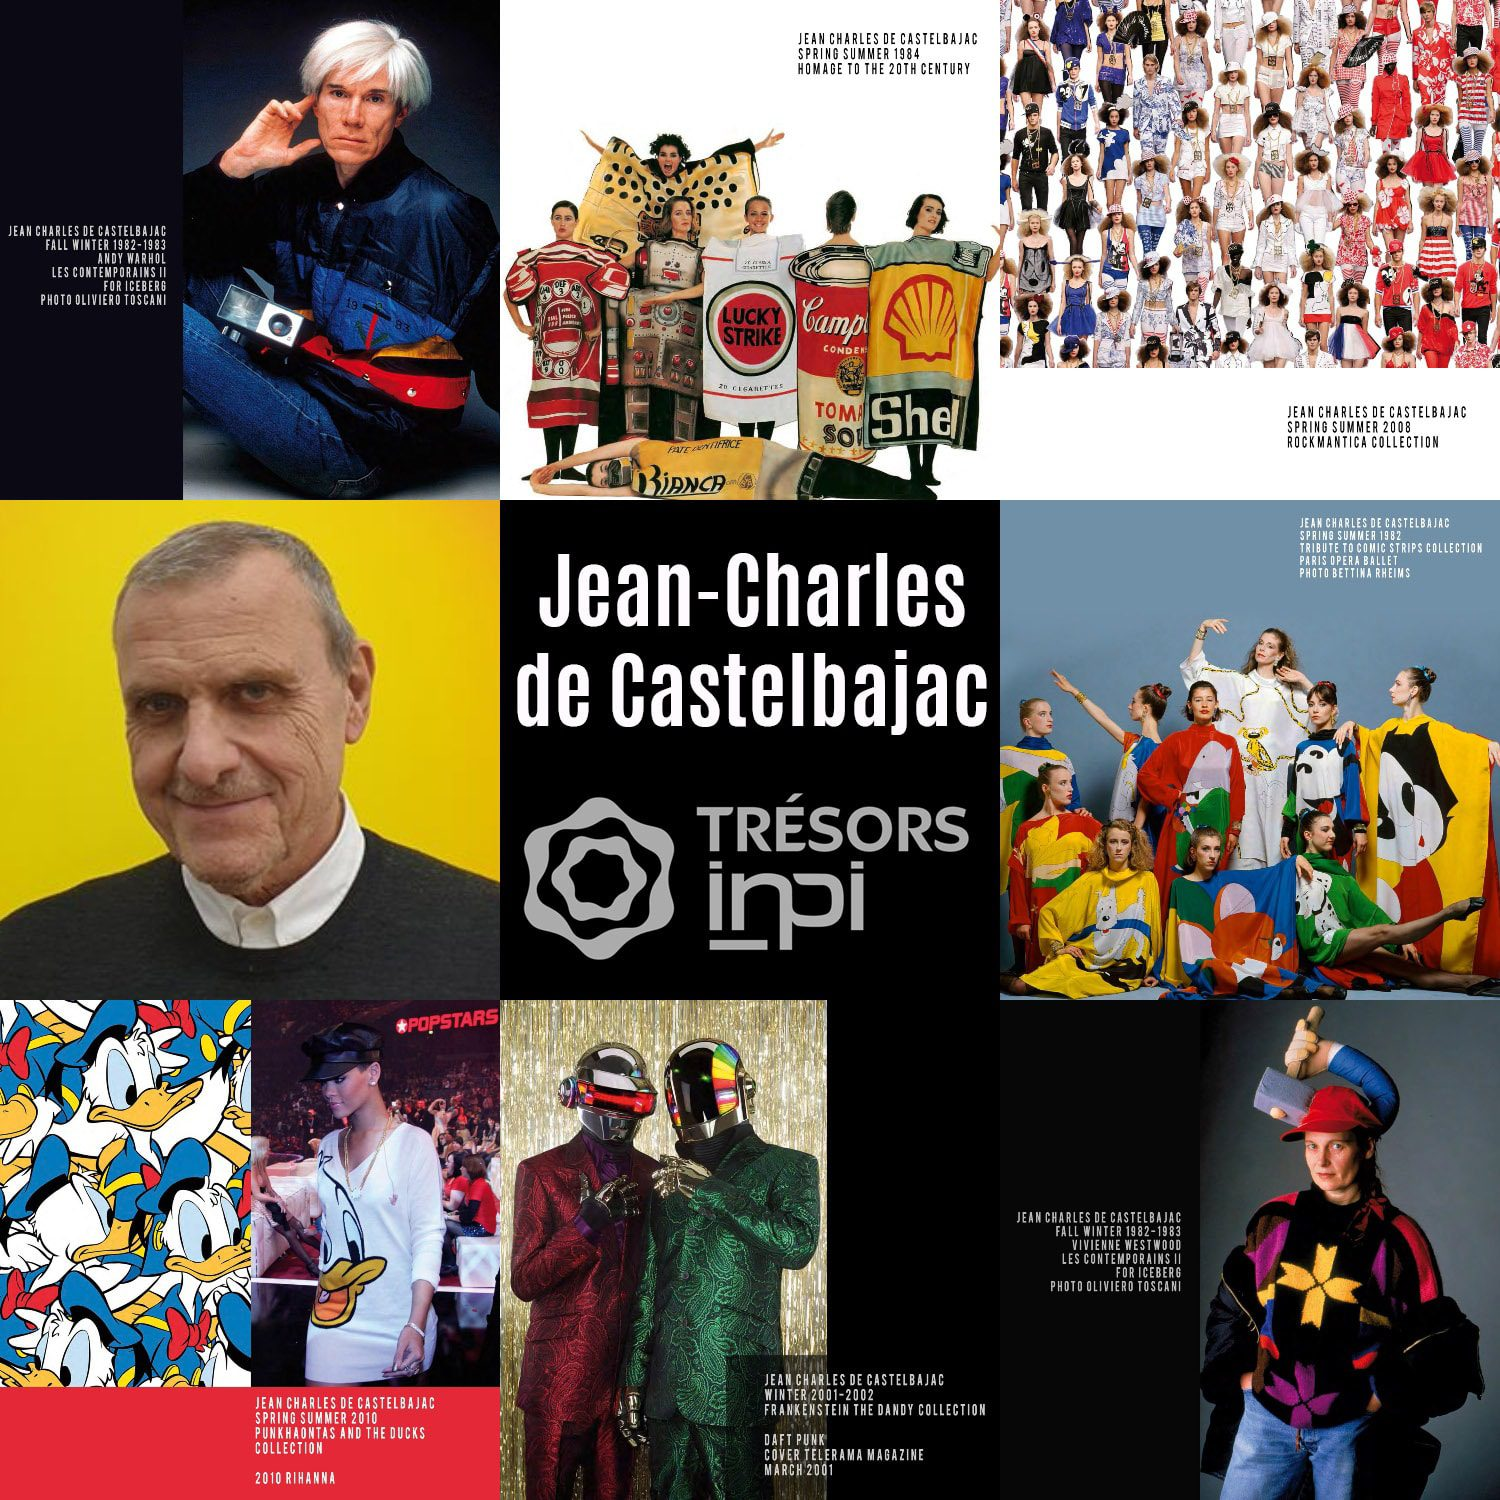 Jean-Charles de Castelbajac Inventions - Treasures INPI by RUNWAY MAGAZINE